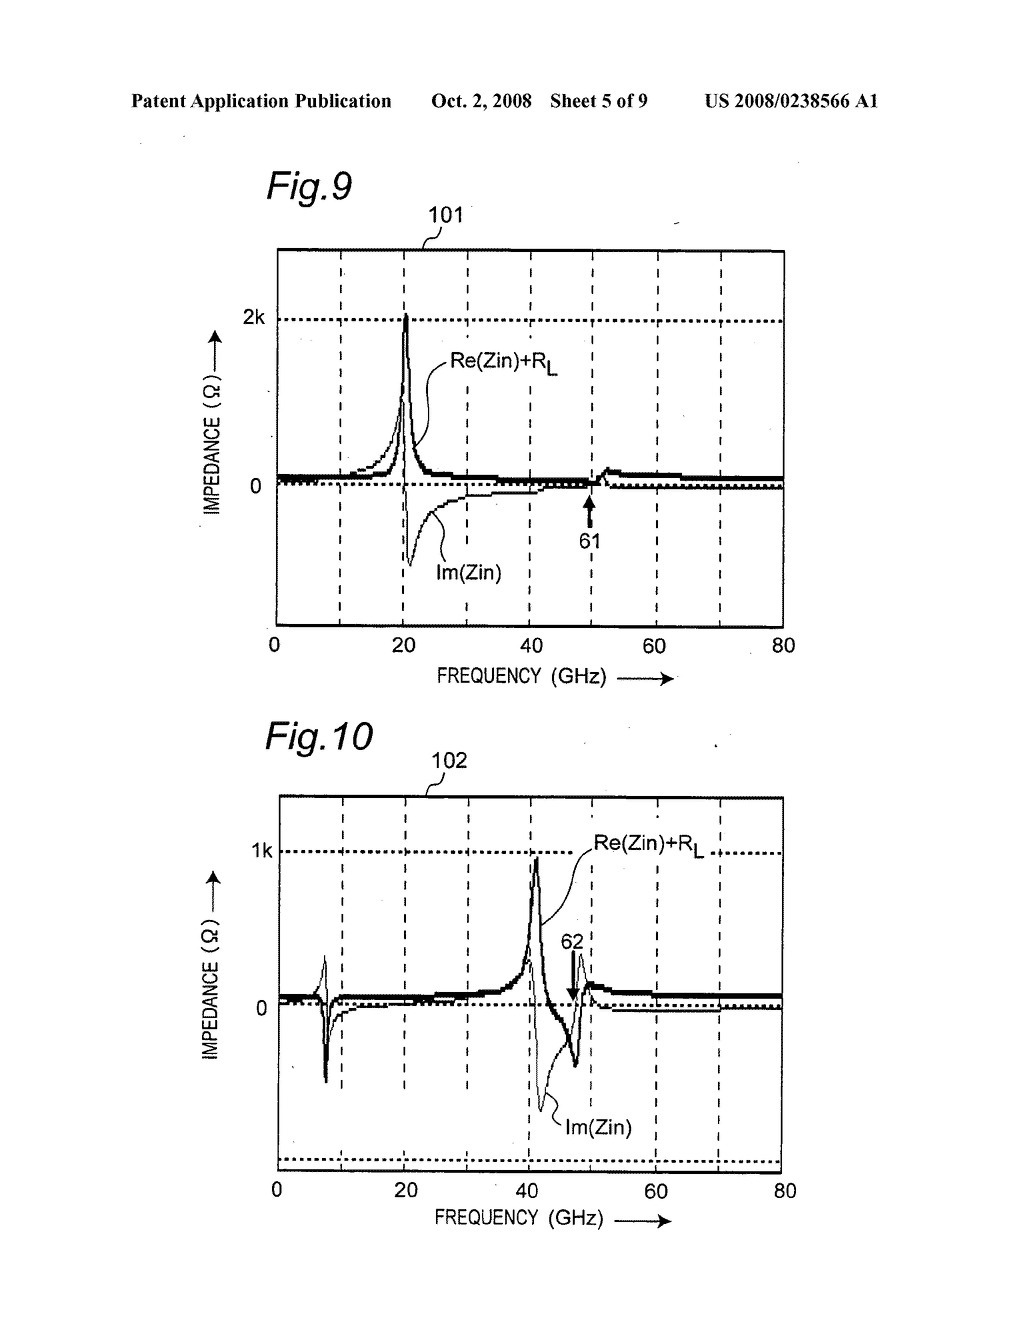 High Frequency Oscillator Circuit With Feedback Of Fet And Short Transmission Line Stub Diagram Schematic Image 06